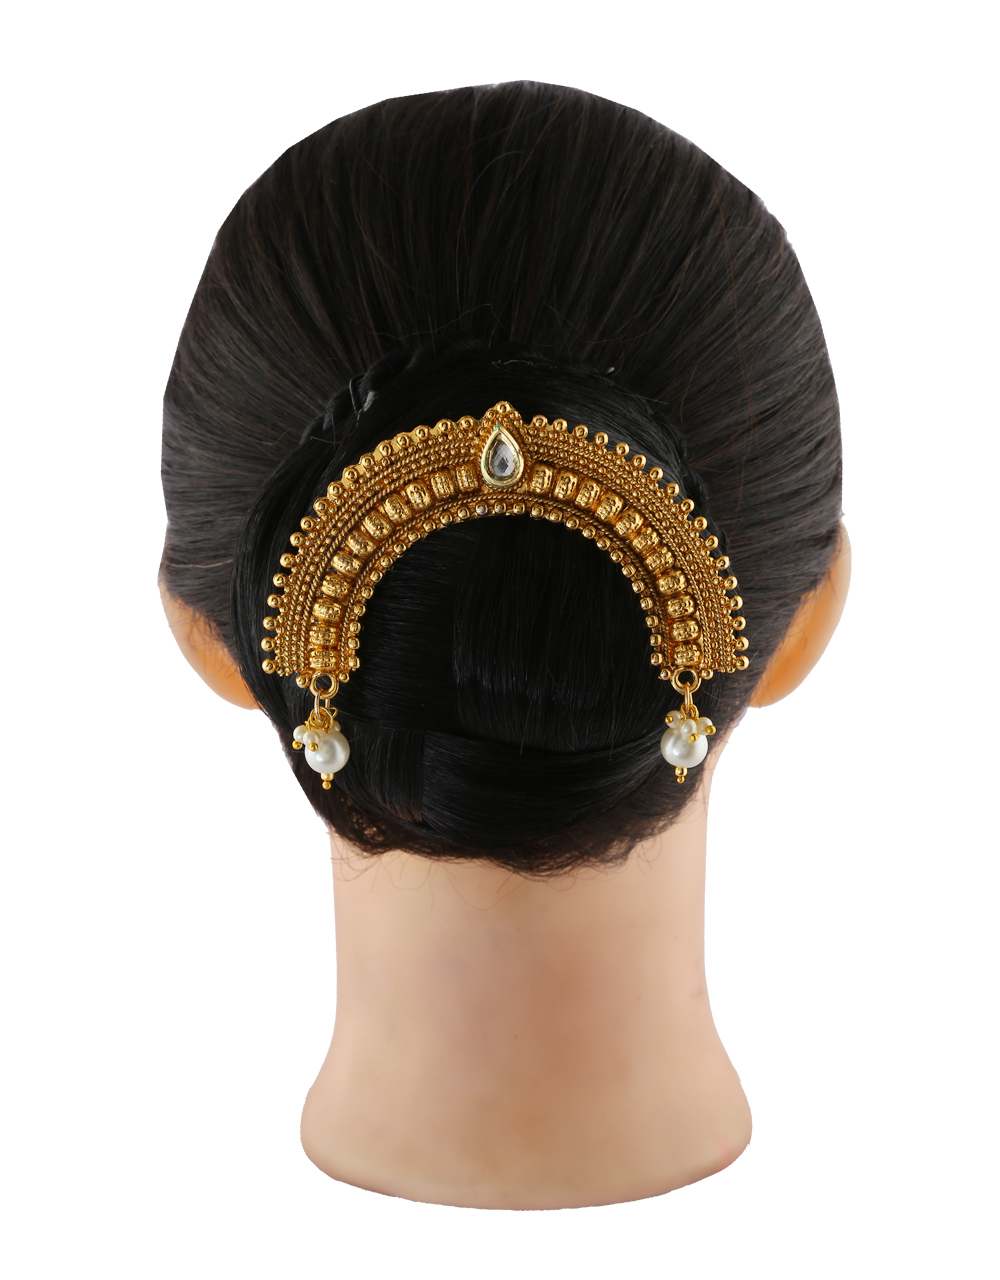 Very Classy Designer Gold Finish Ambada Hair Accessories